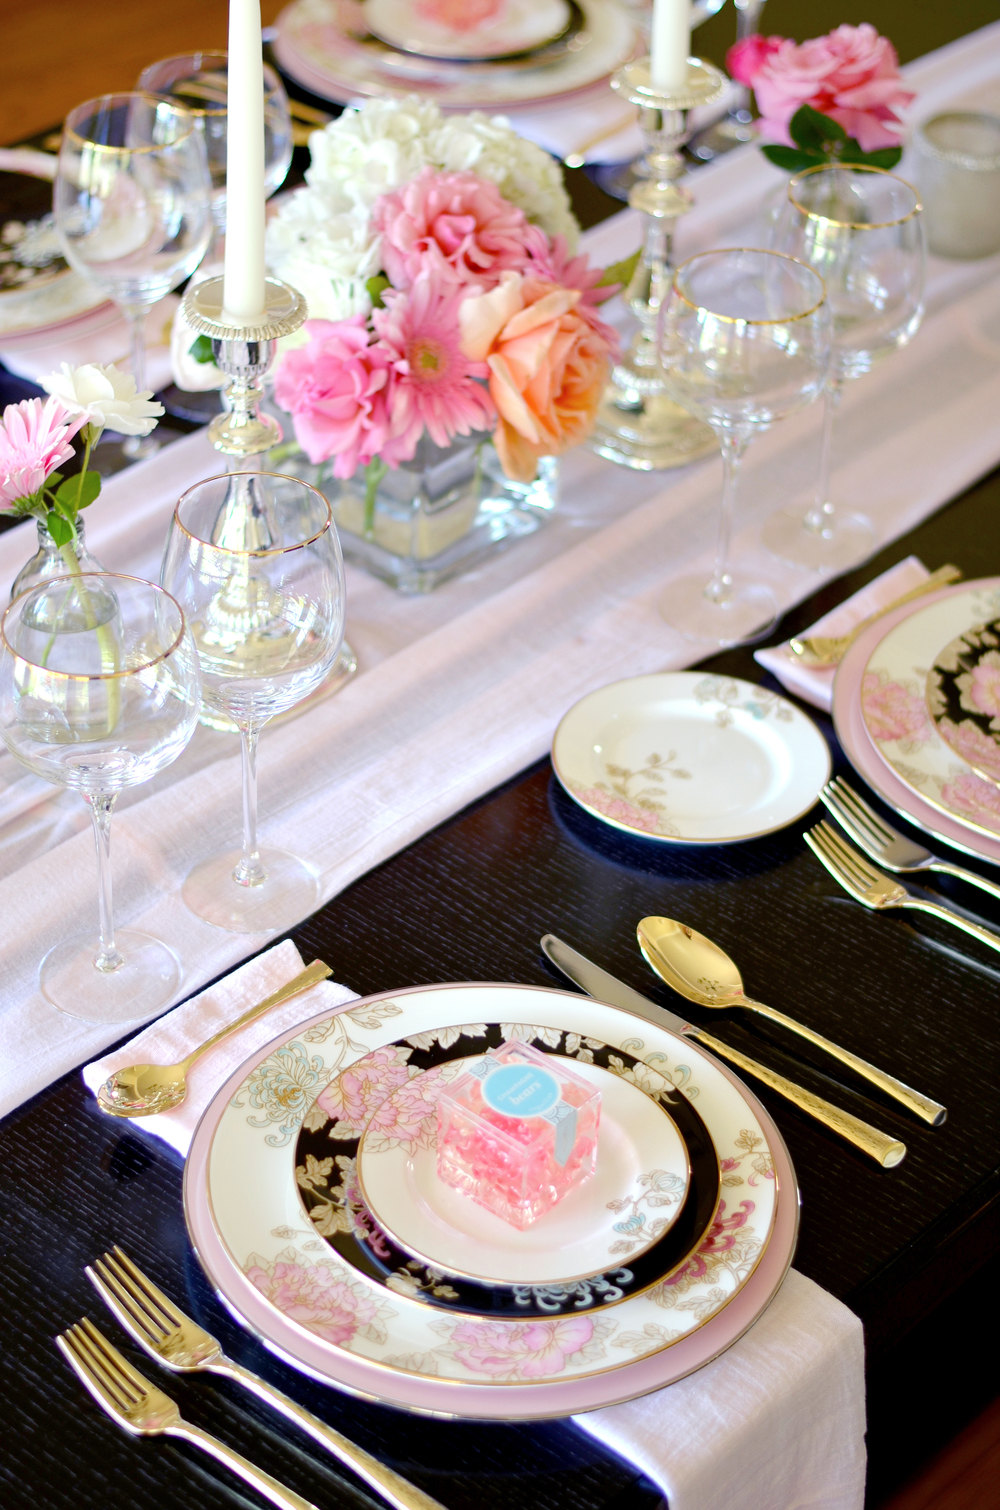 SETTING A BOHO CHIC TABLE WITH MARCHESA BY LENOX U2014 Table + Dine By Deborah  Shearer